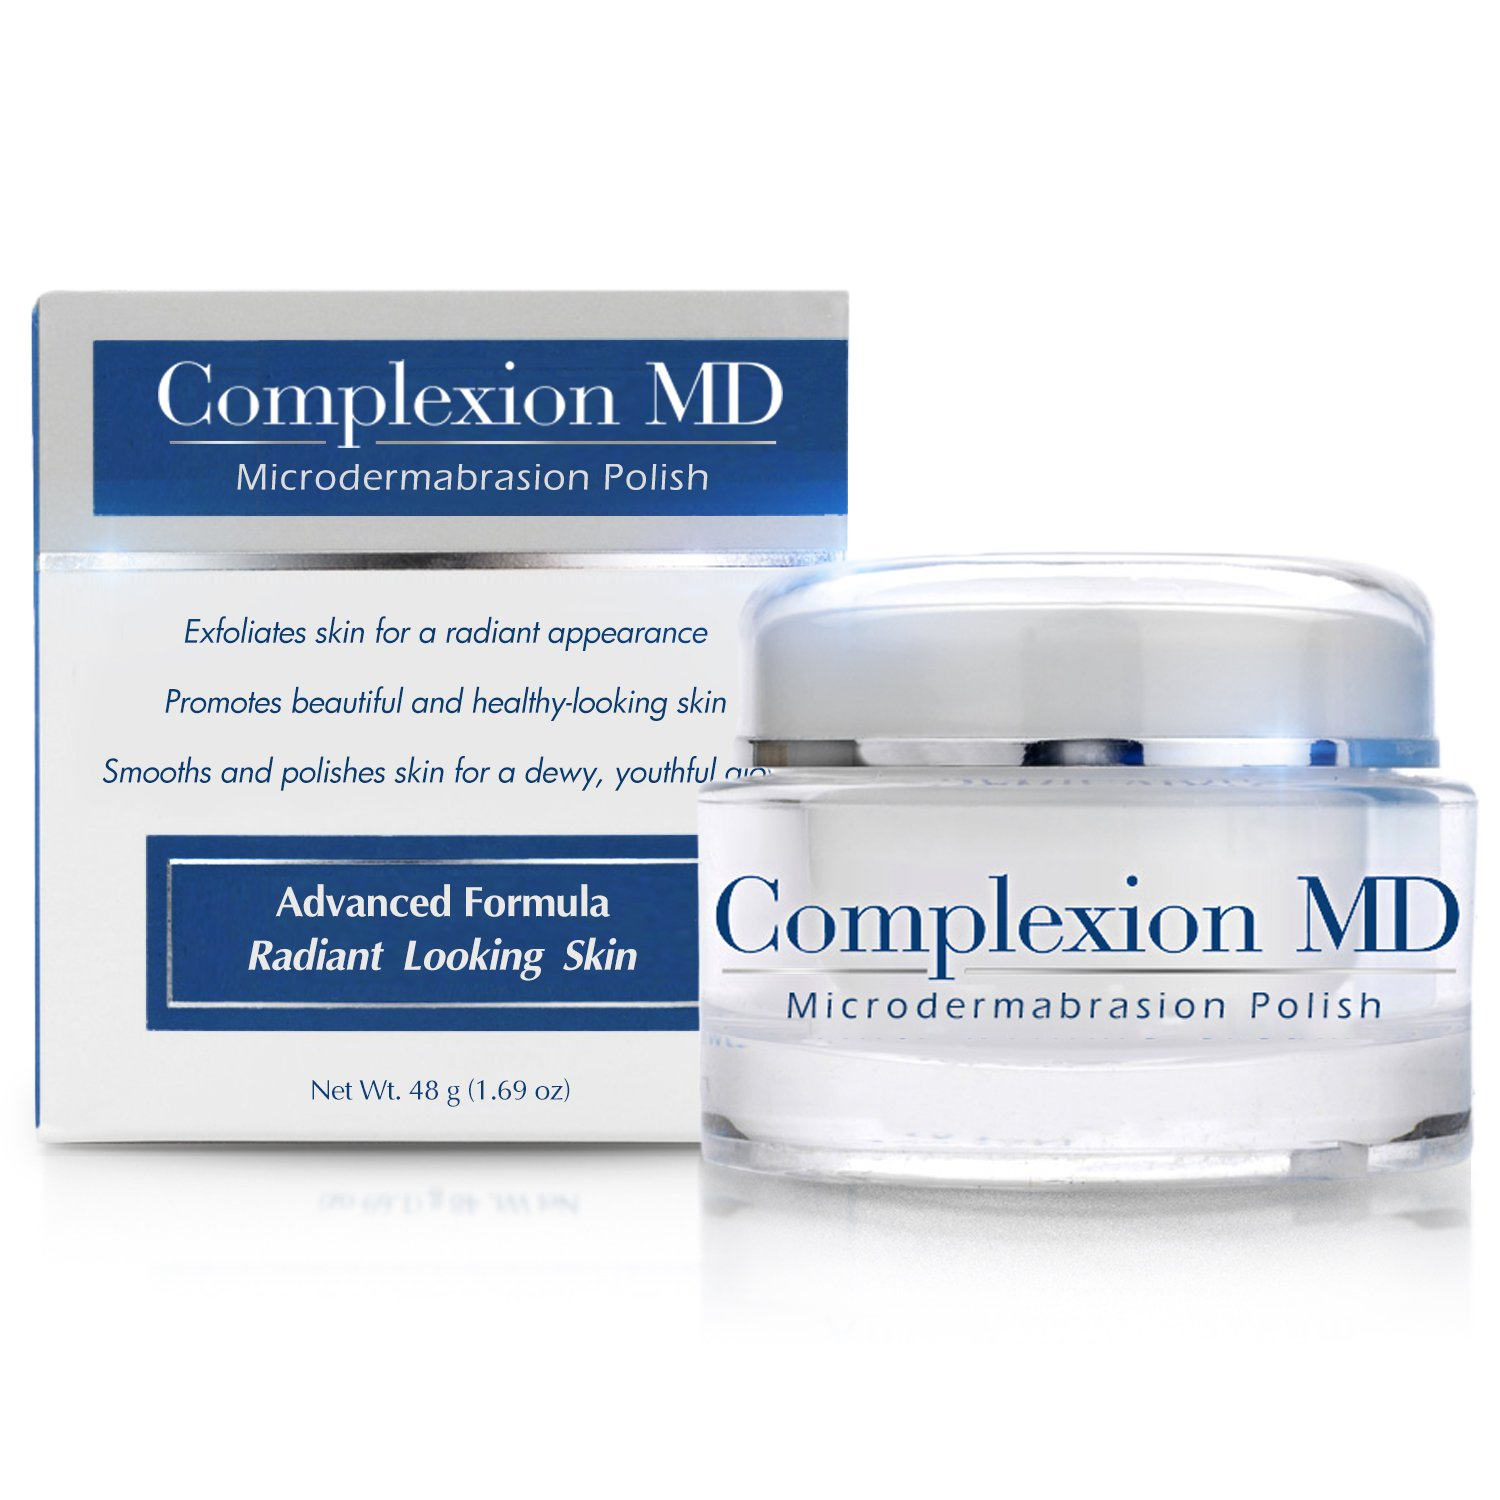 Complexion MD Exfoliating Face Scrub -- Anti Aging & Pore Refining Microdermabrasion Facial Polish with Green Tea & Natural Pumice -- Spa Quality Home Exfoliation for Clear Youthful Skin (1.69oz/48g) by Complexion MD